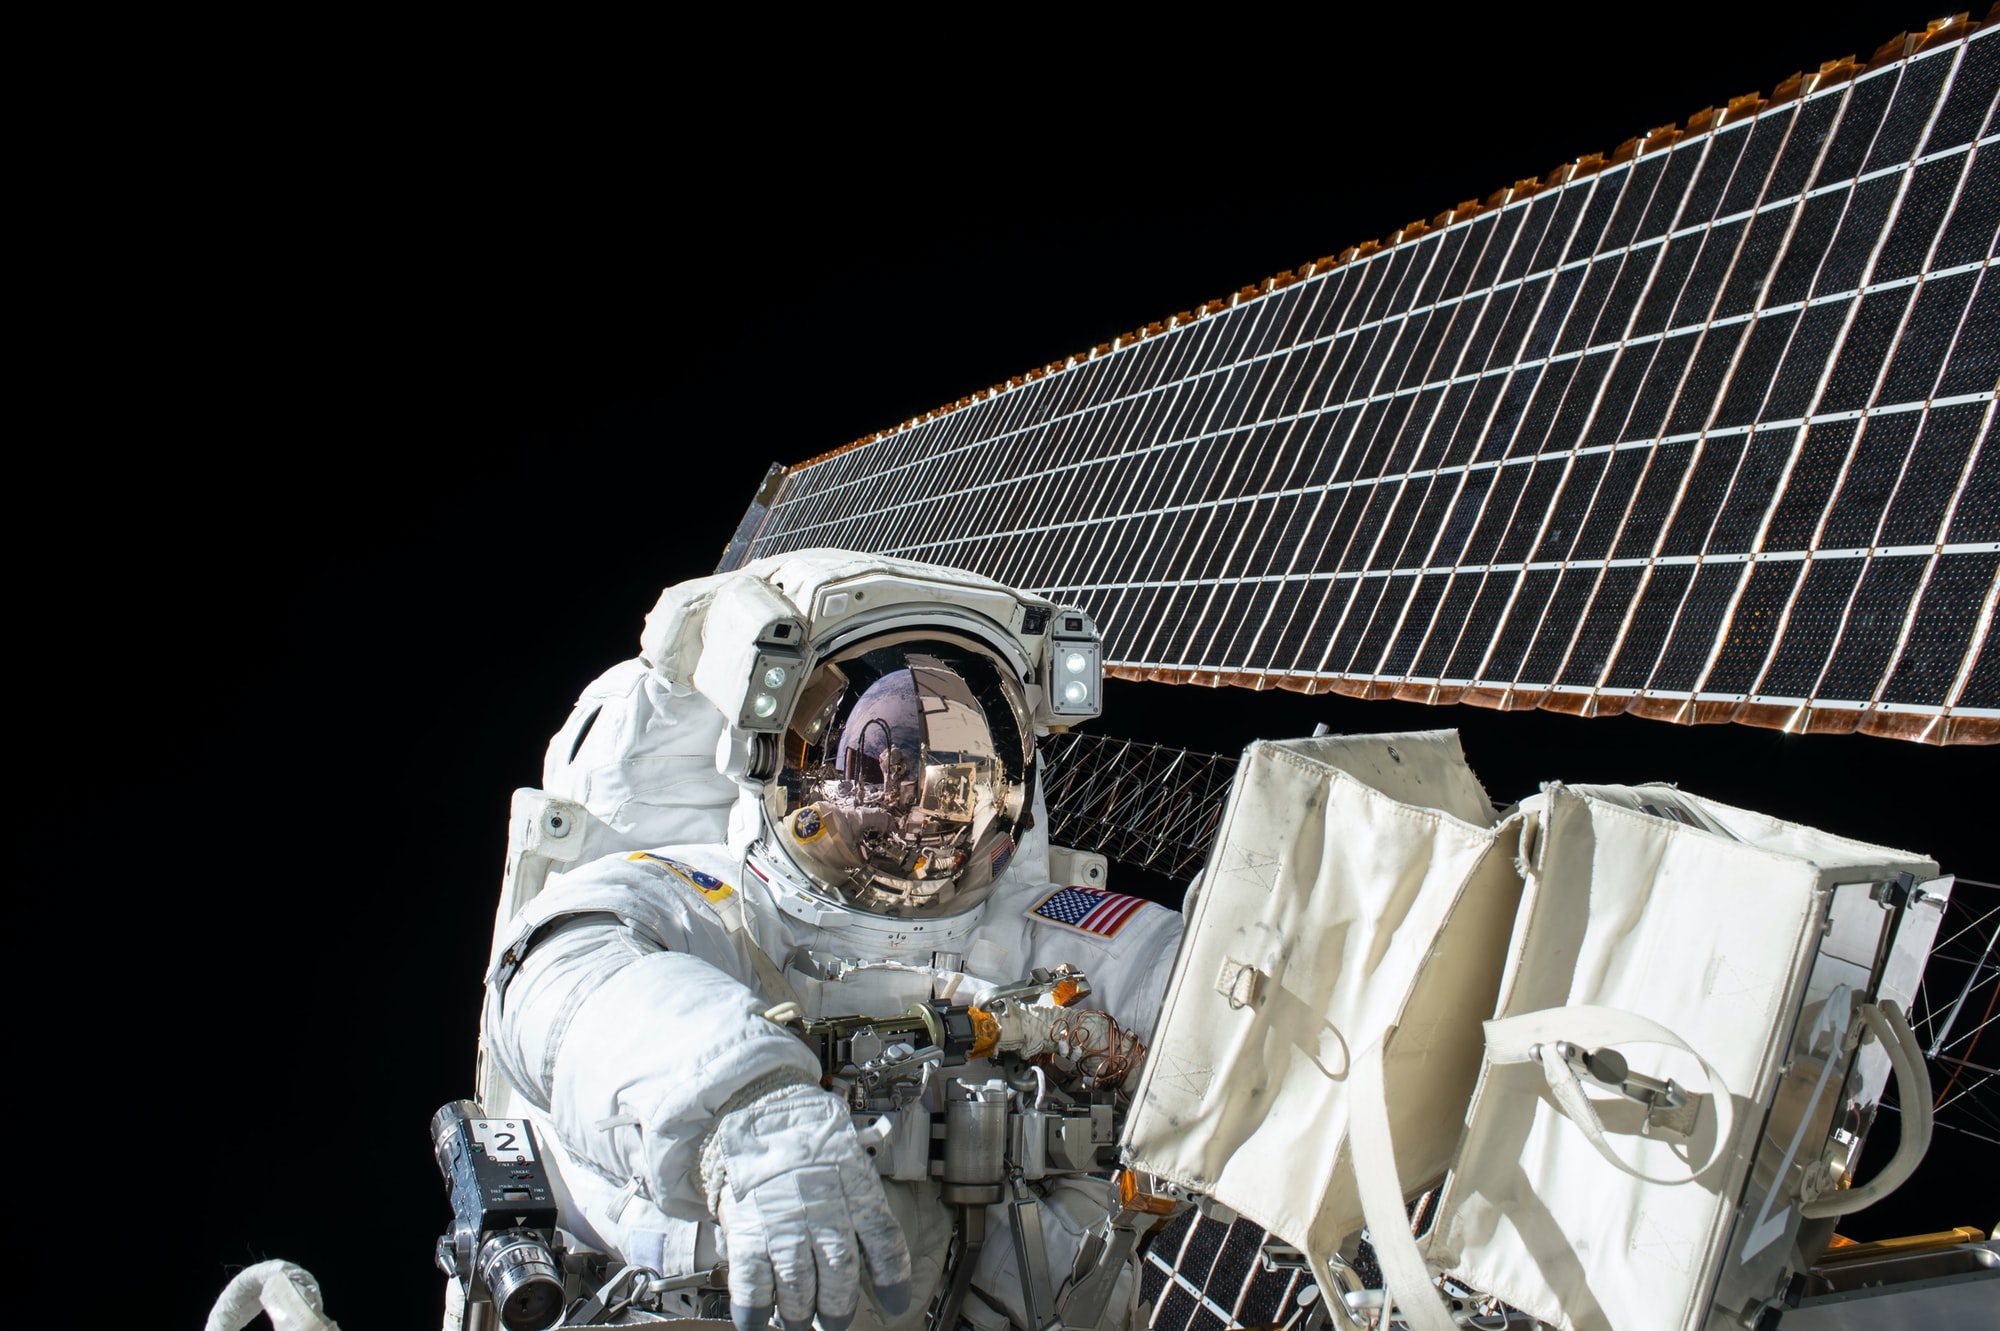 Astronaut spacewalking